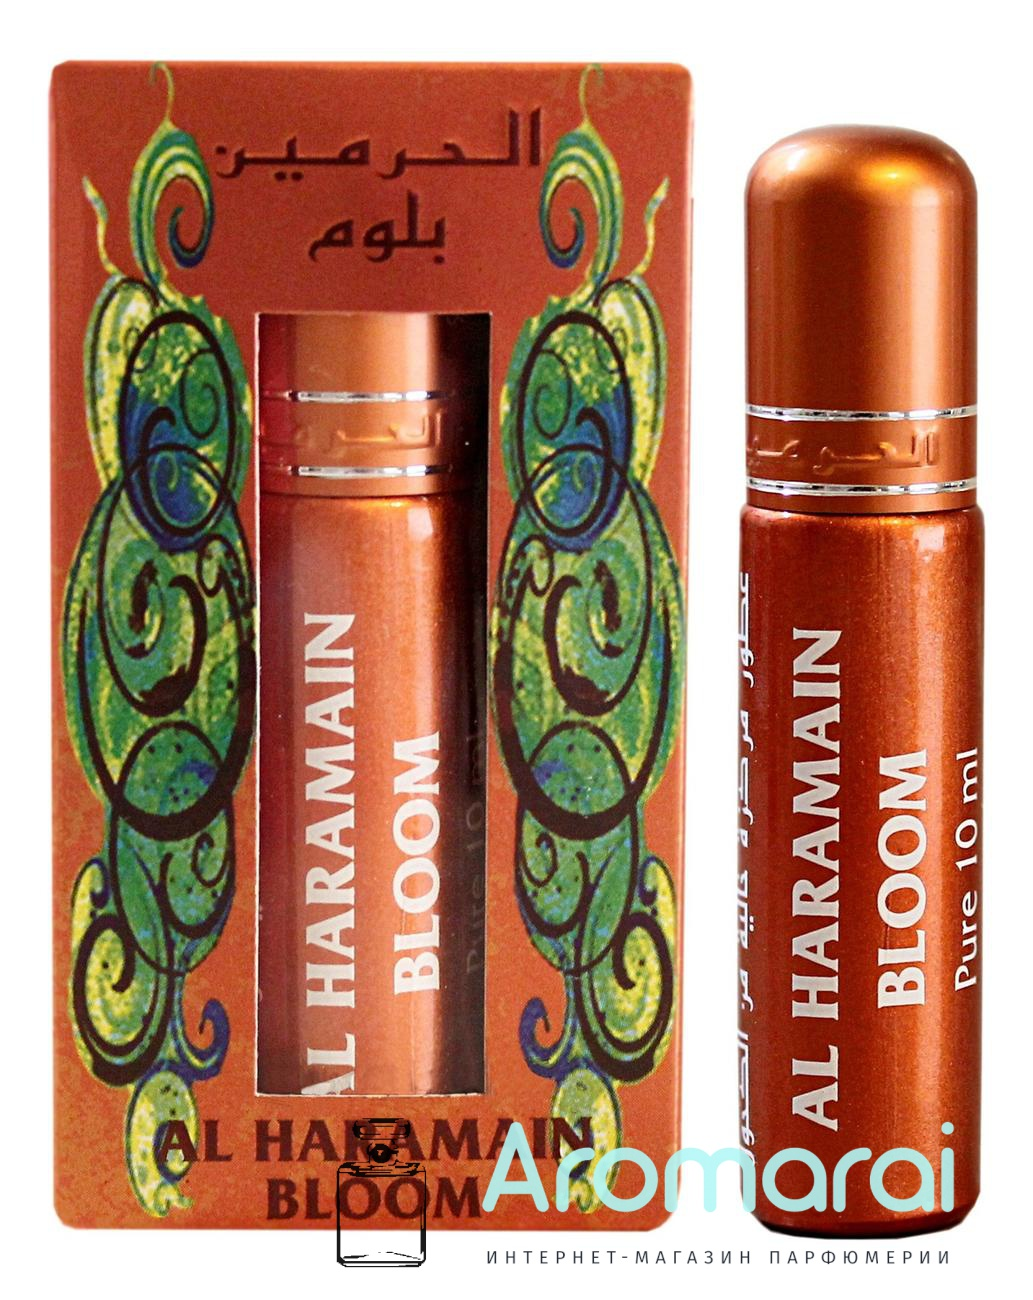 Al Haramain Perfumes Bloom